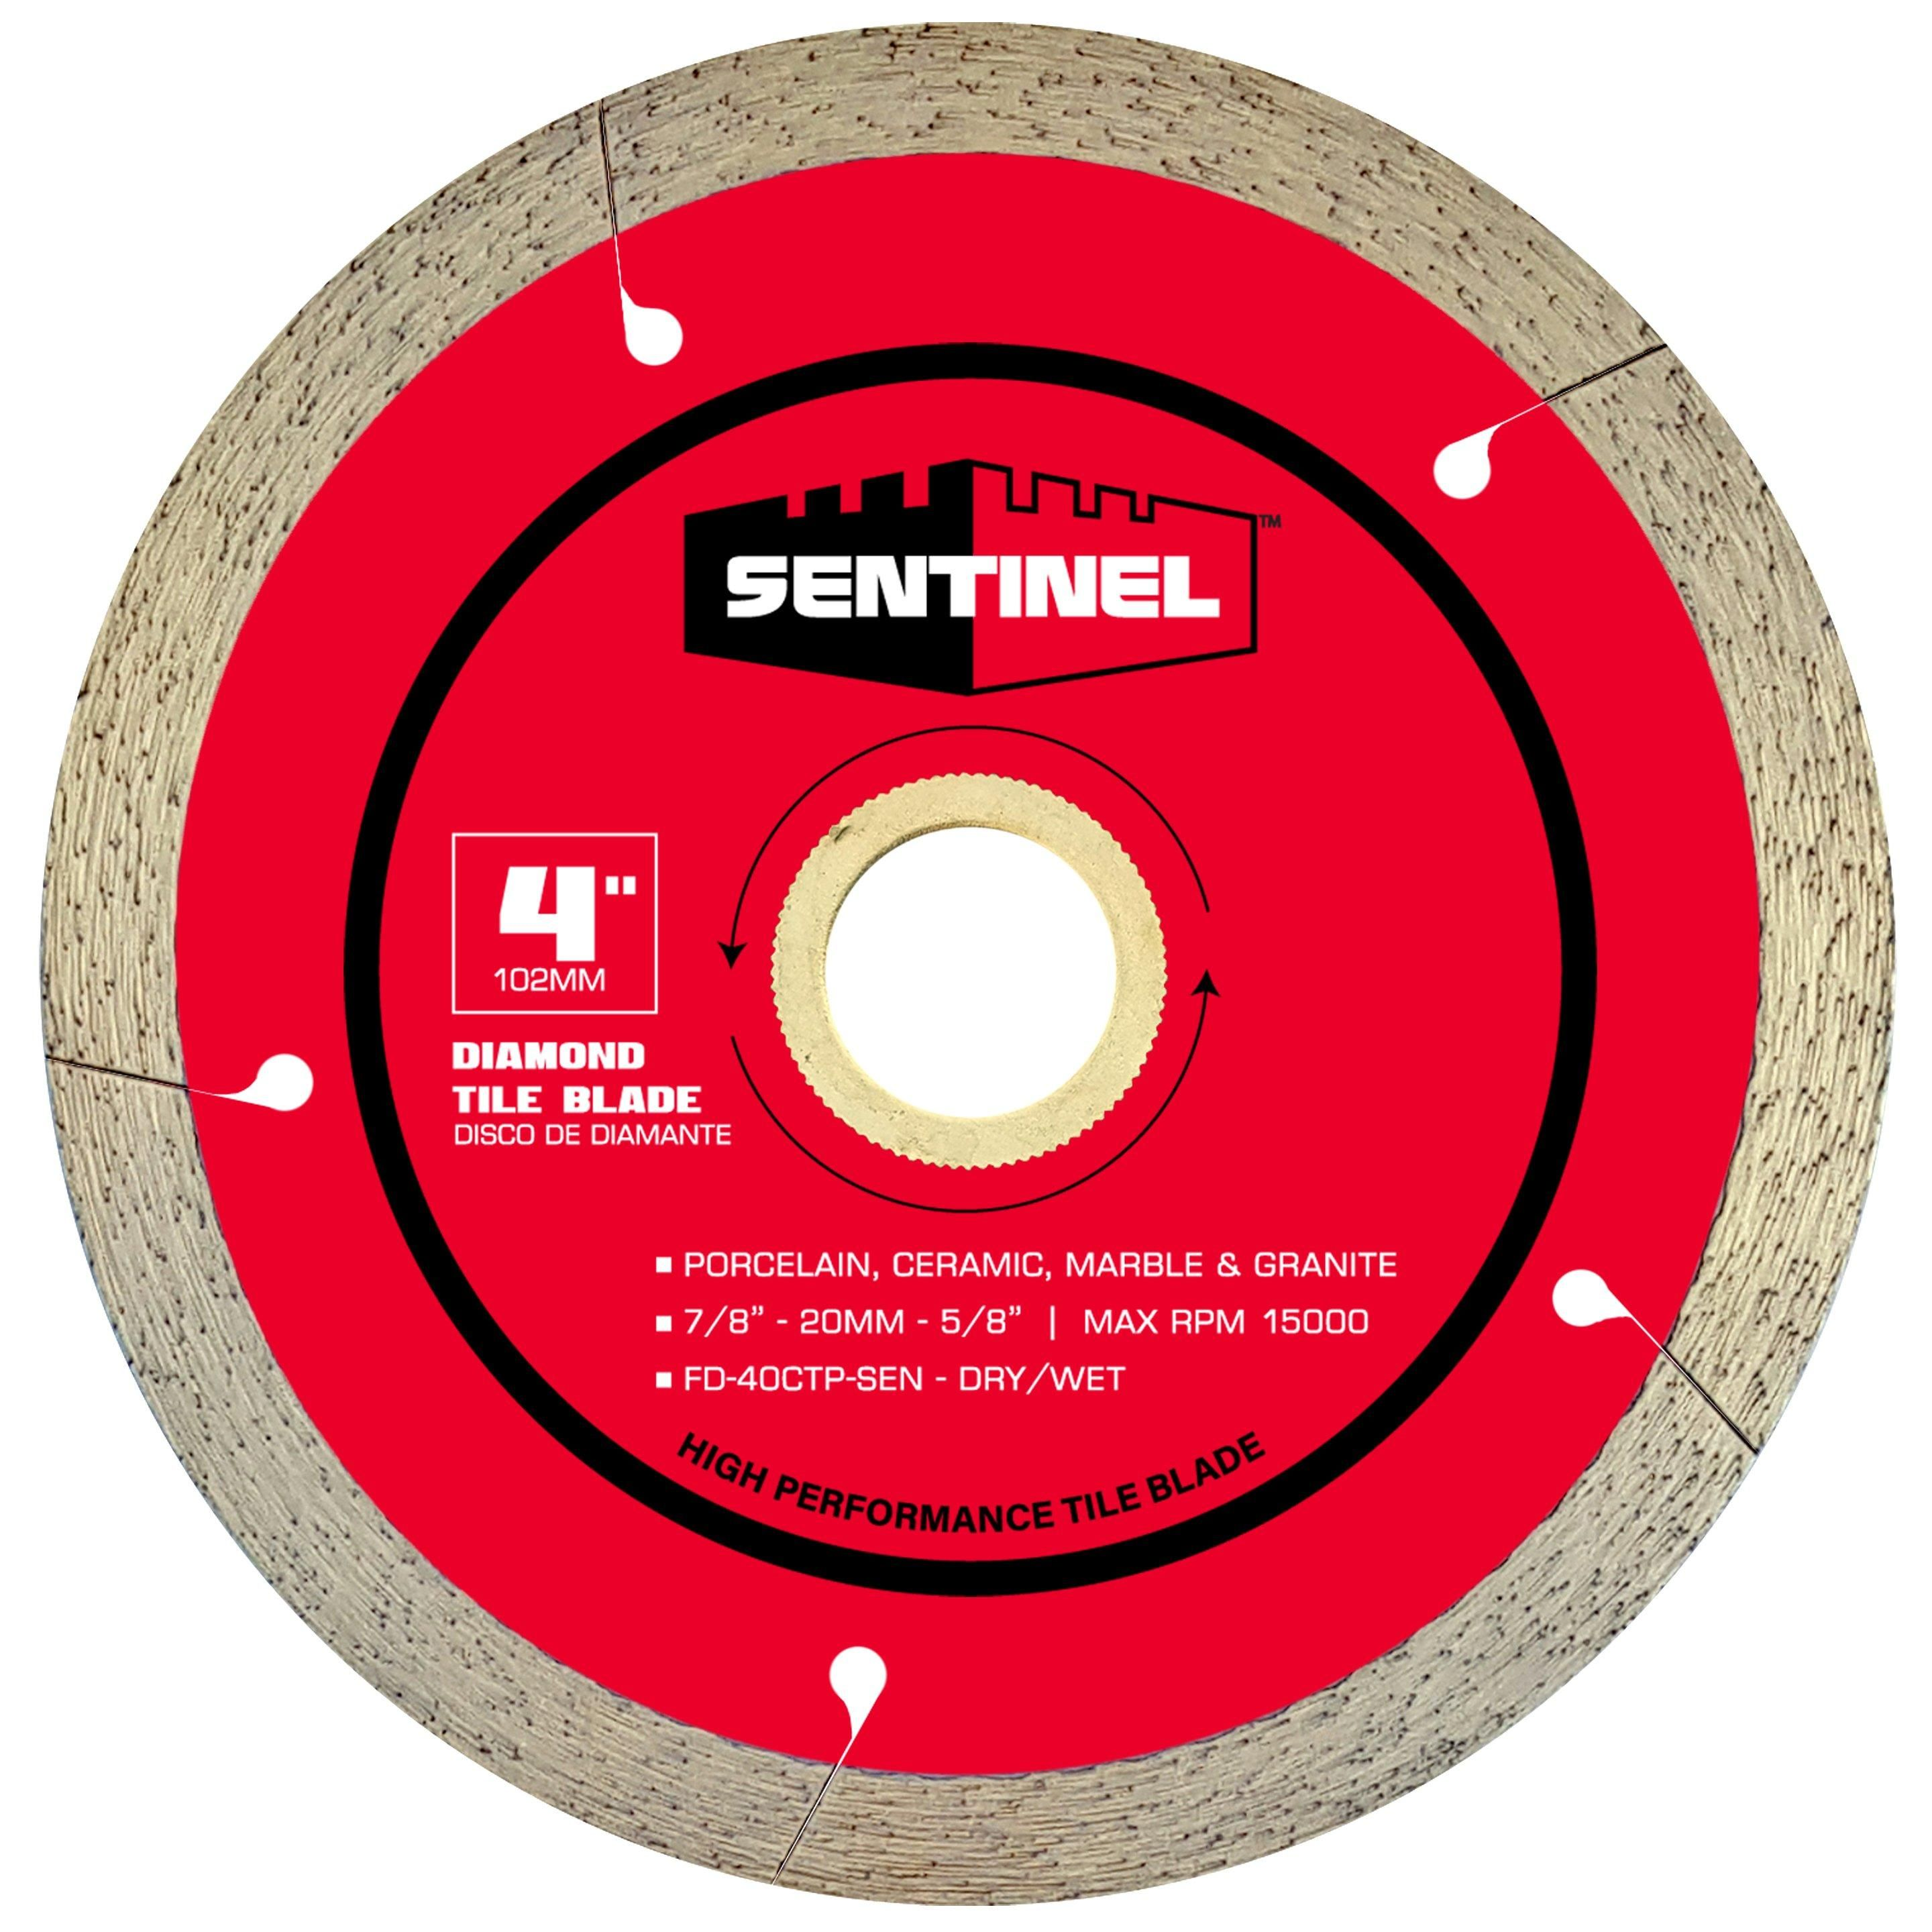 Sentinel 4in Tile Diamond Blade Diamond Blades Tile Saw Blade